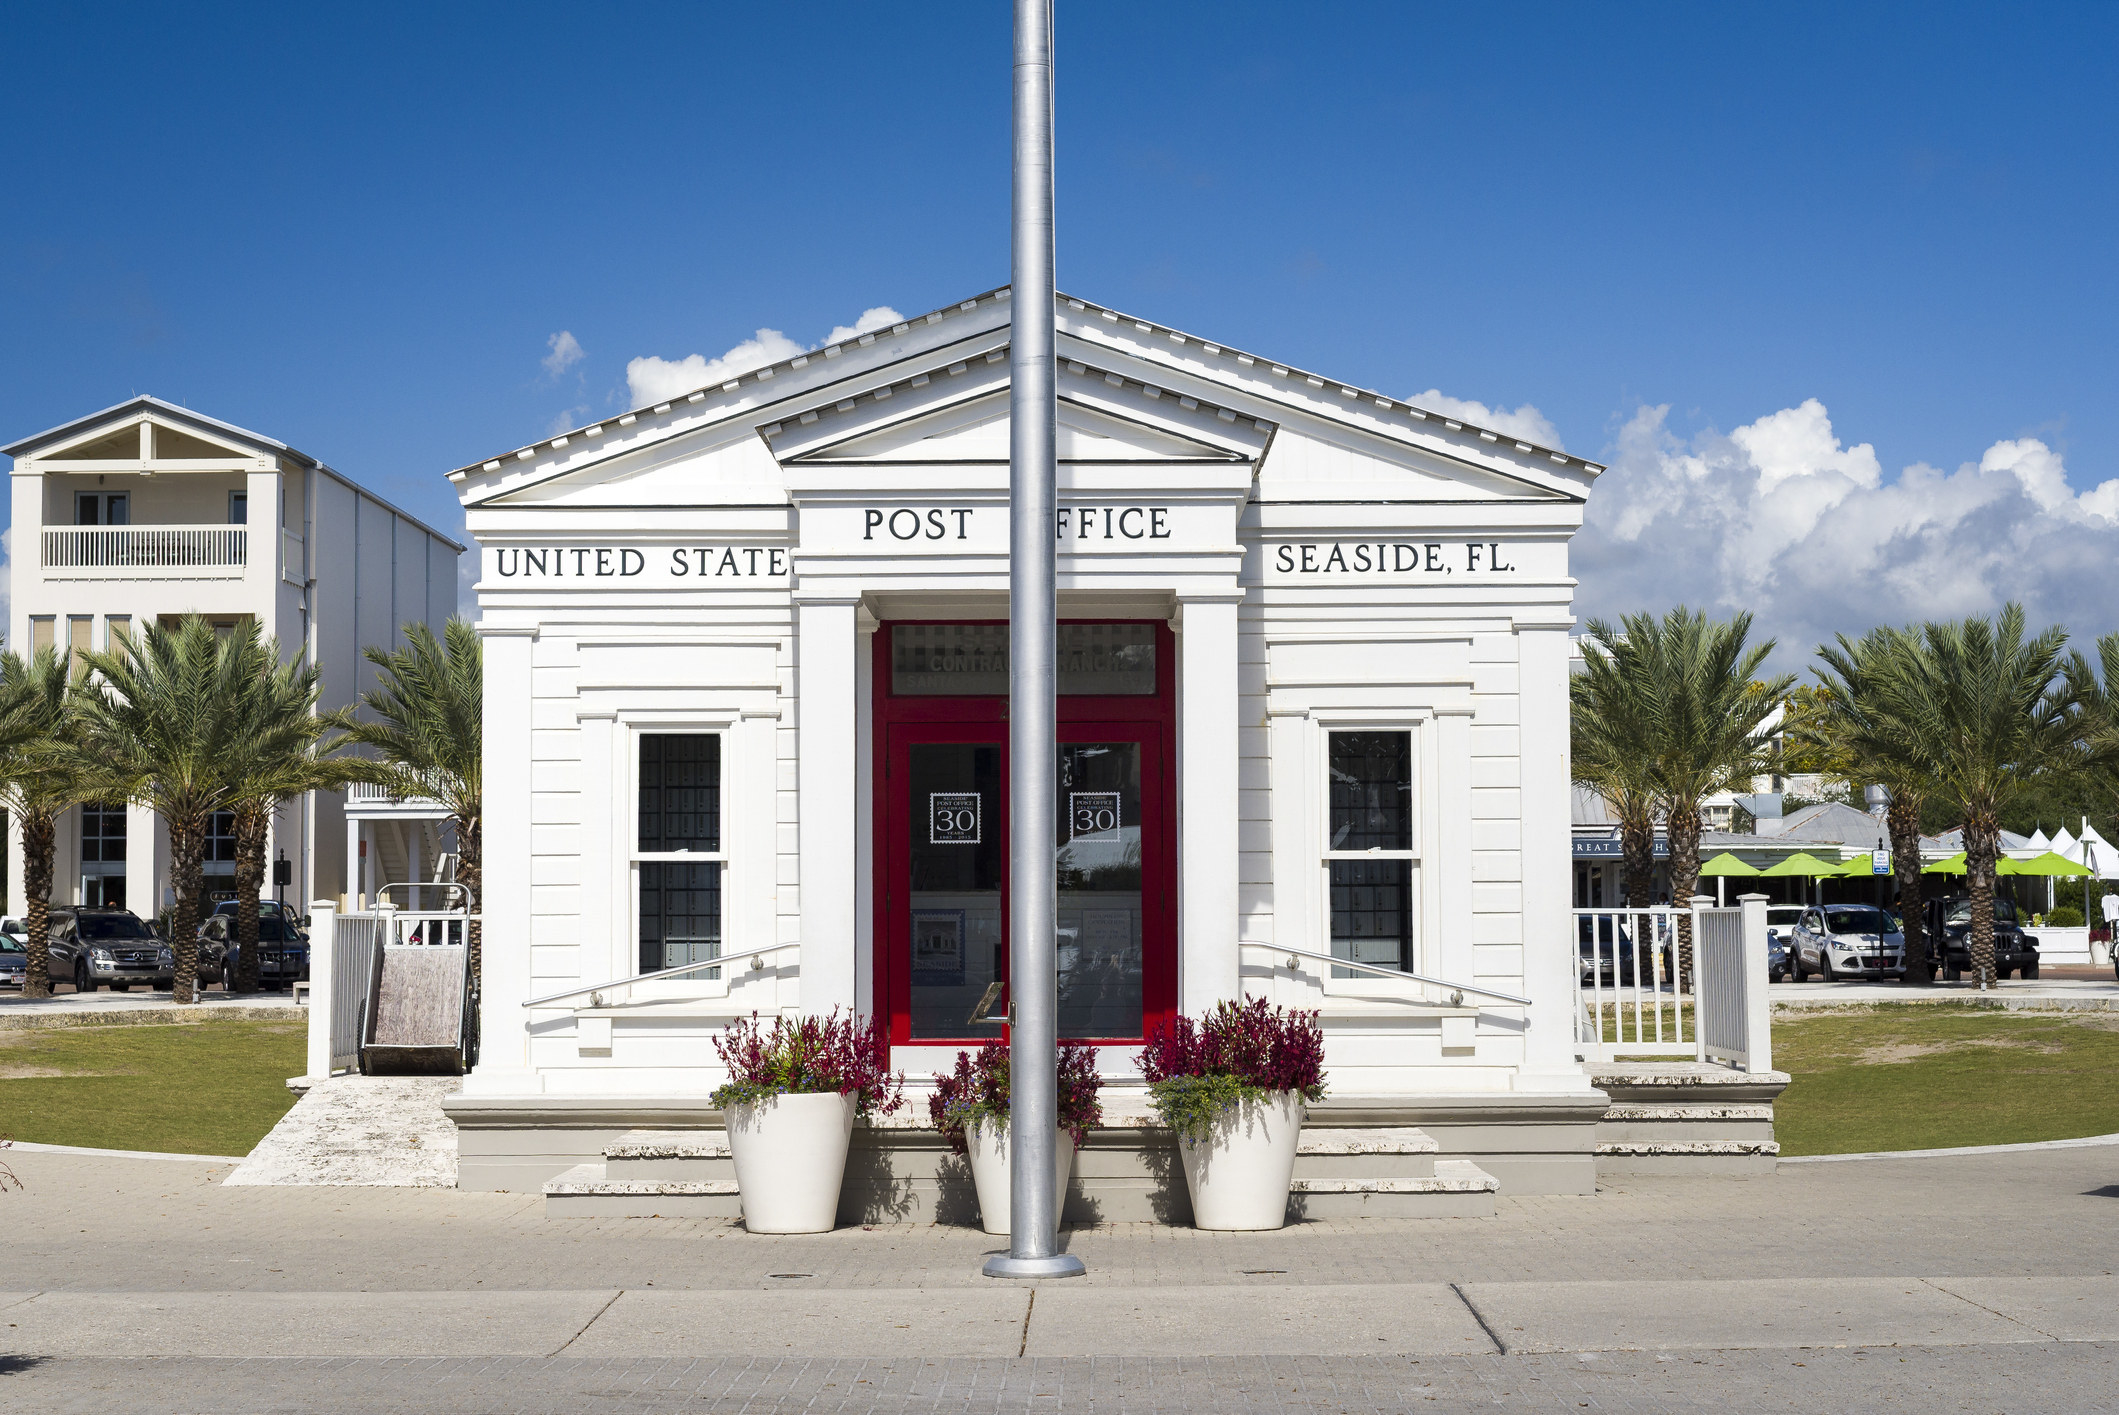 Photo of local post office in Seaside, Florida